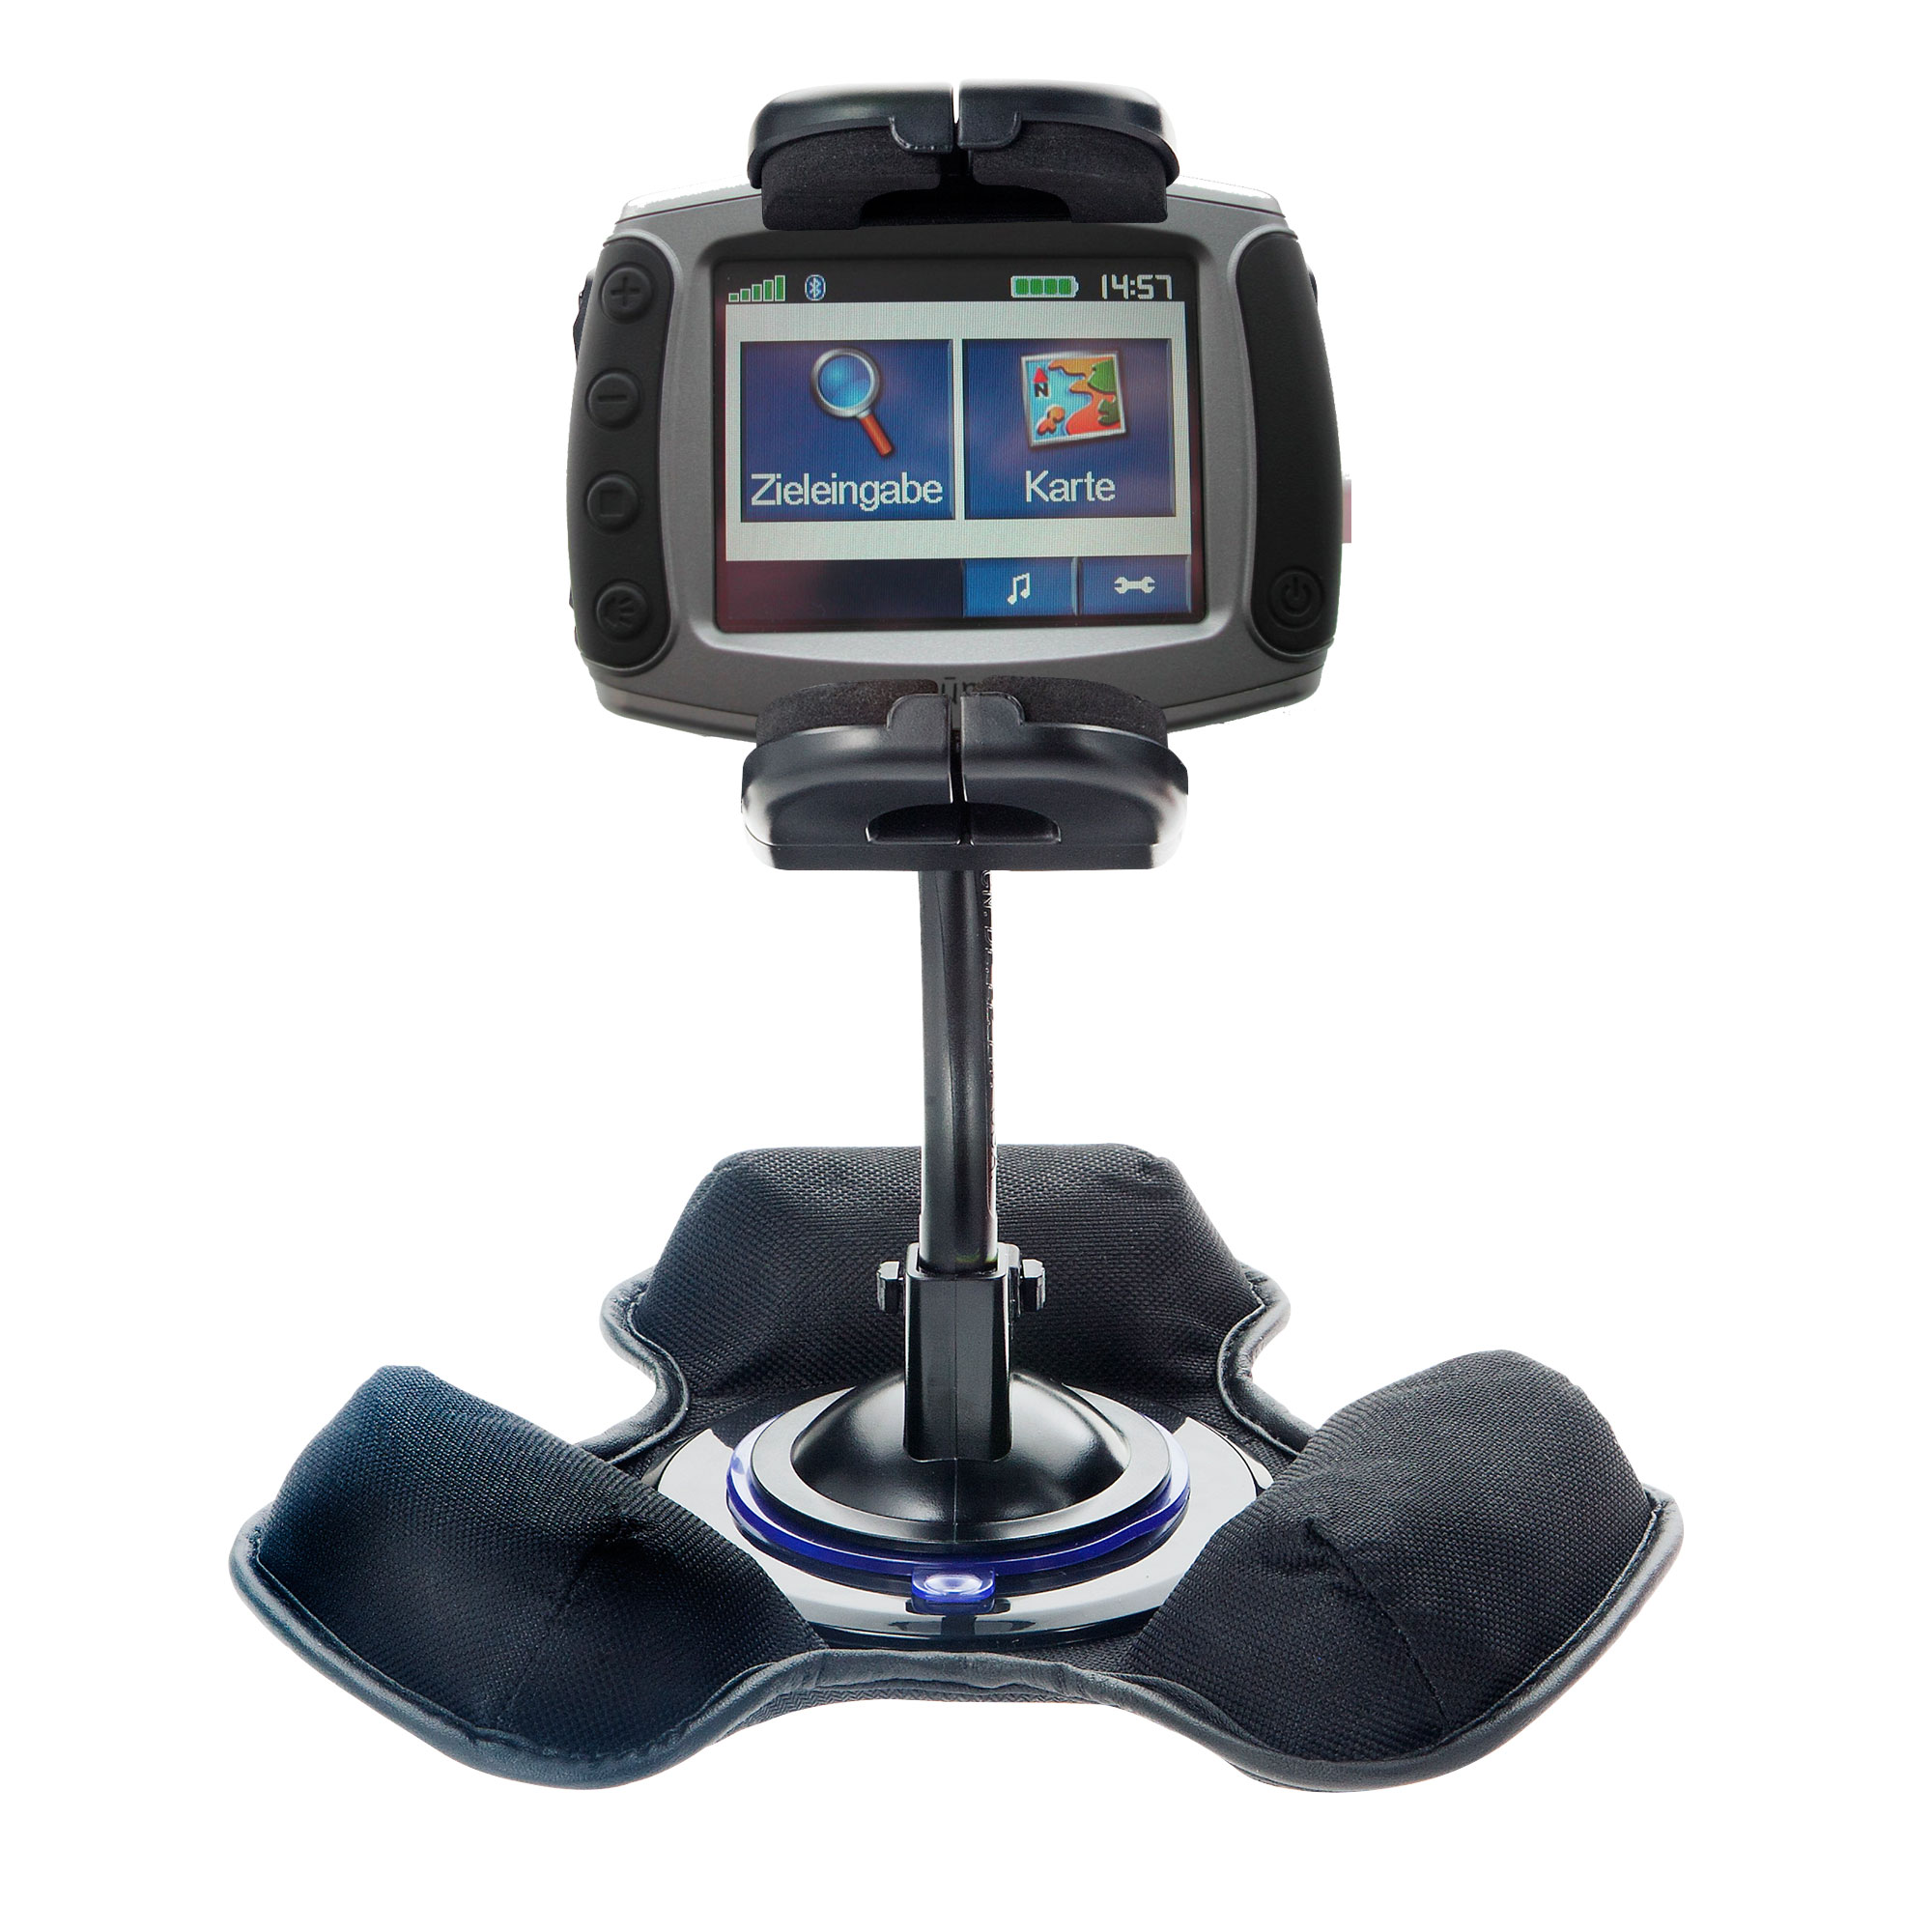 Dash and Windshield Holder compatible with the Garmin Zumo 500